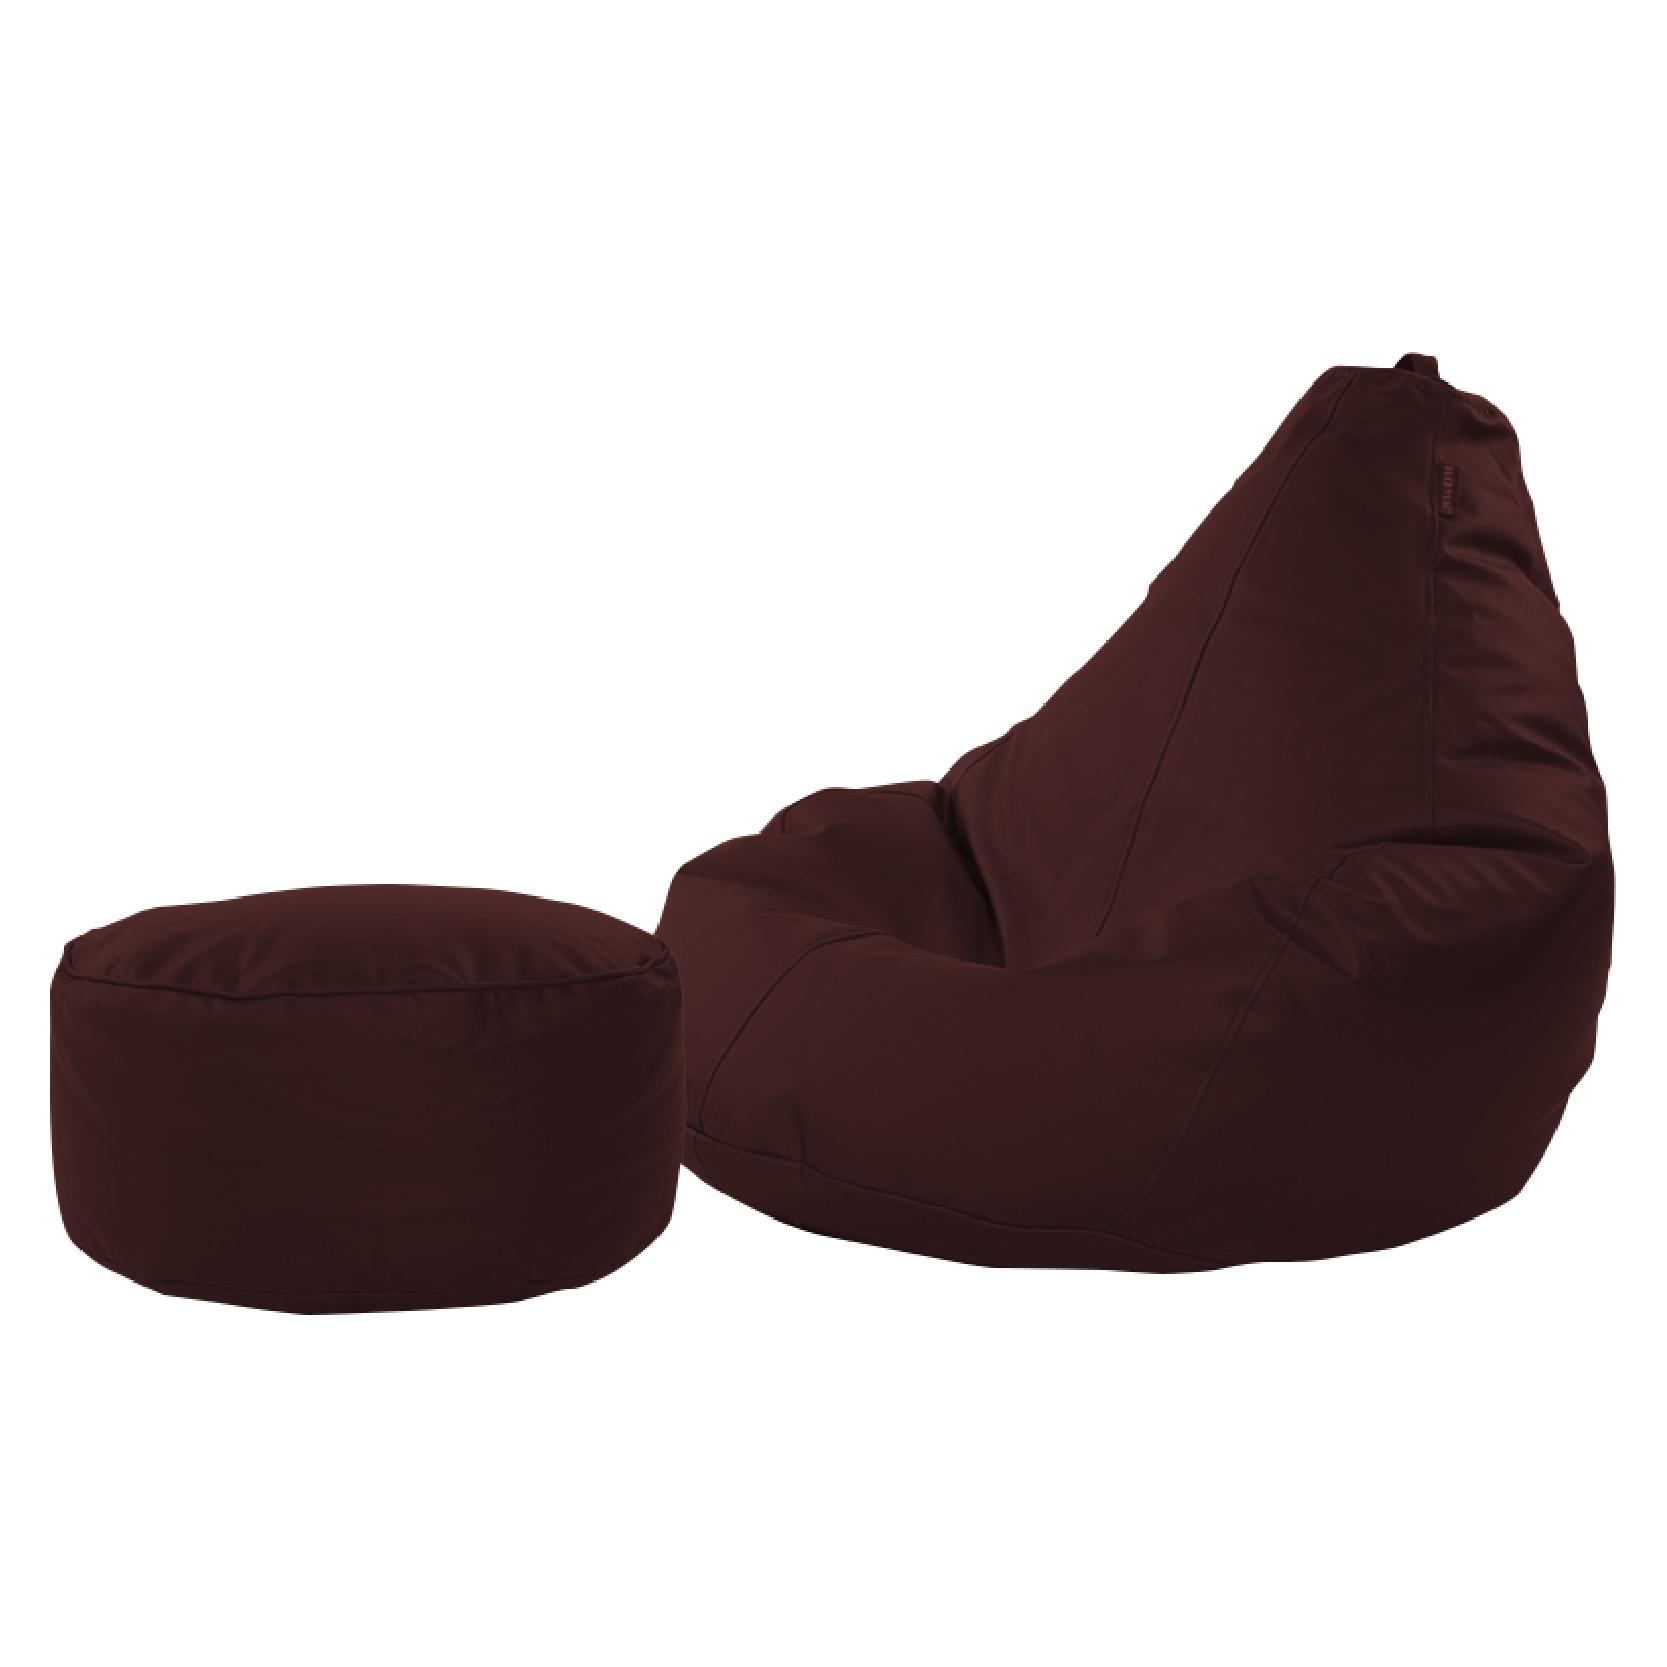 Jiji Nano Bean Bag 90 X 70 X 80 Cm With Leg Rest Stool - Beanbag/ Bean Bag Chair /styrofoam Particles Filled/ Fabric Outer Layer/ Washable / Small Sofa (sg) By Jiji.